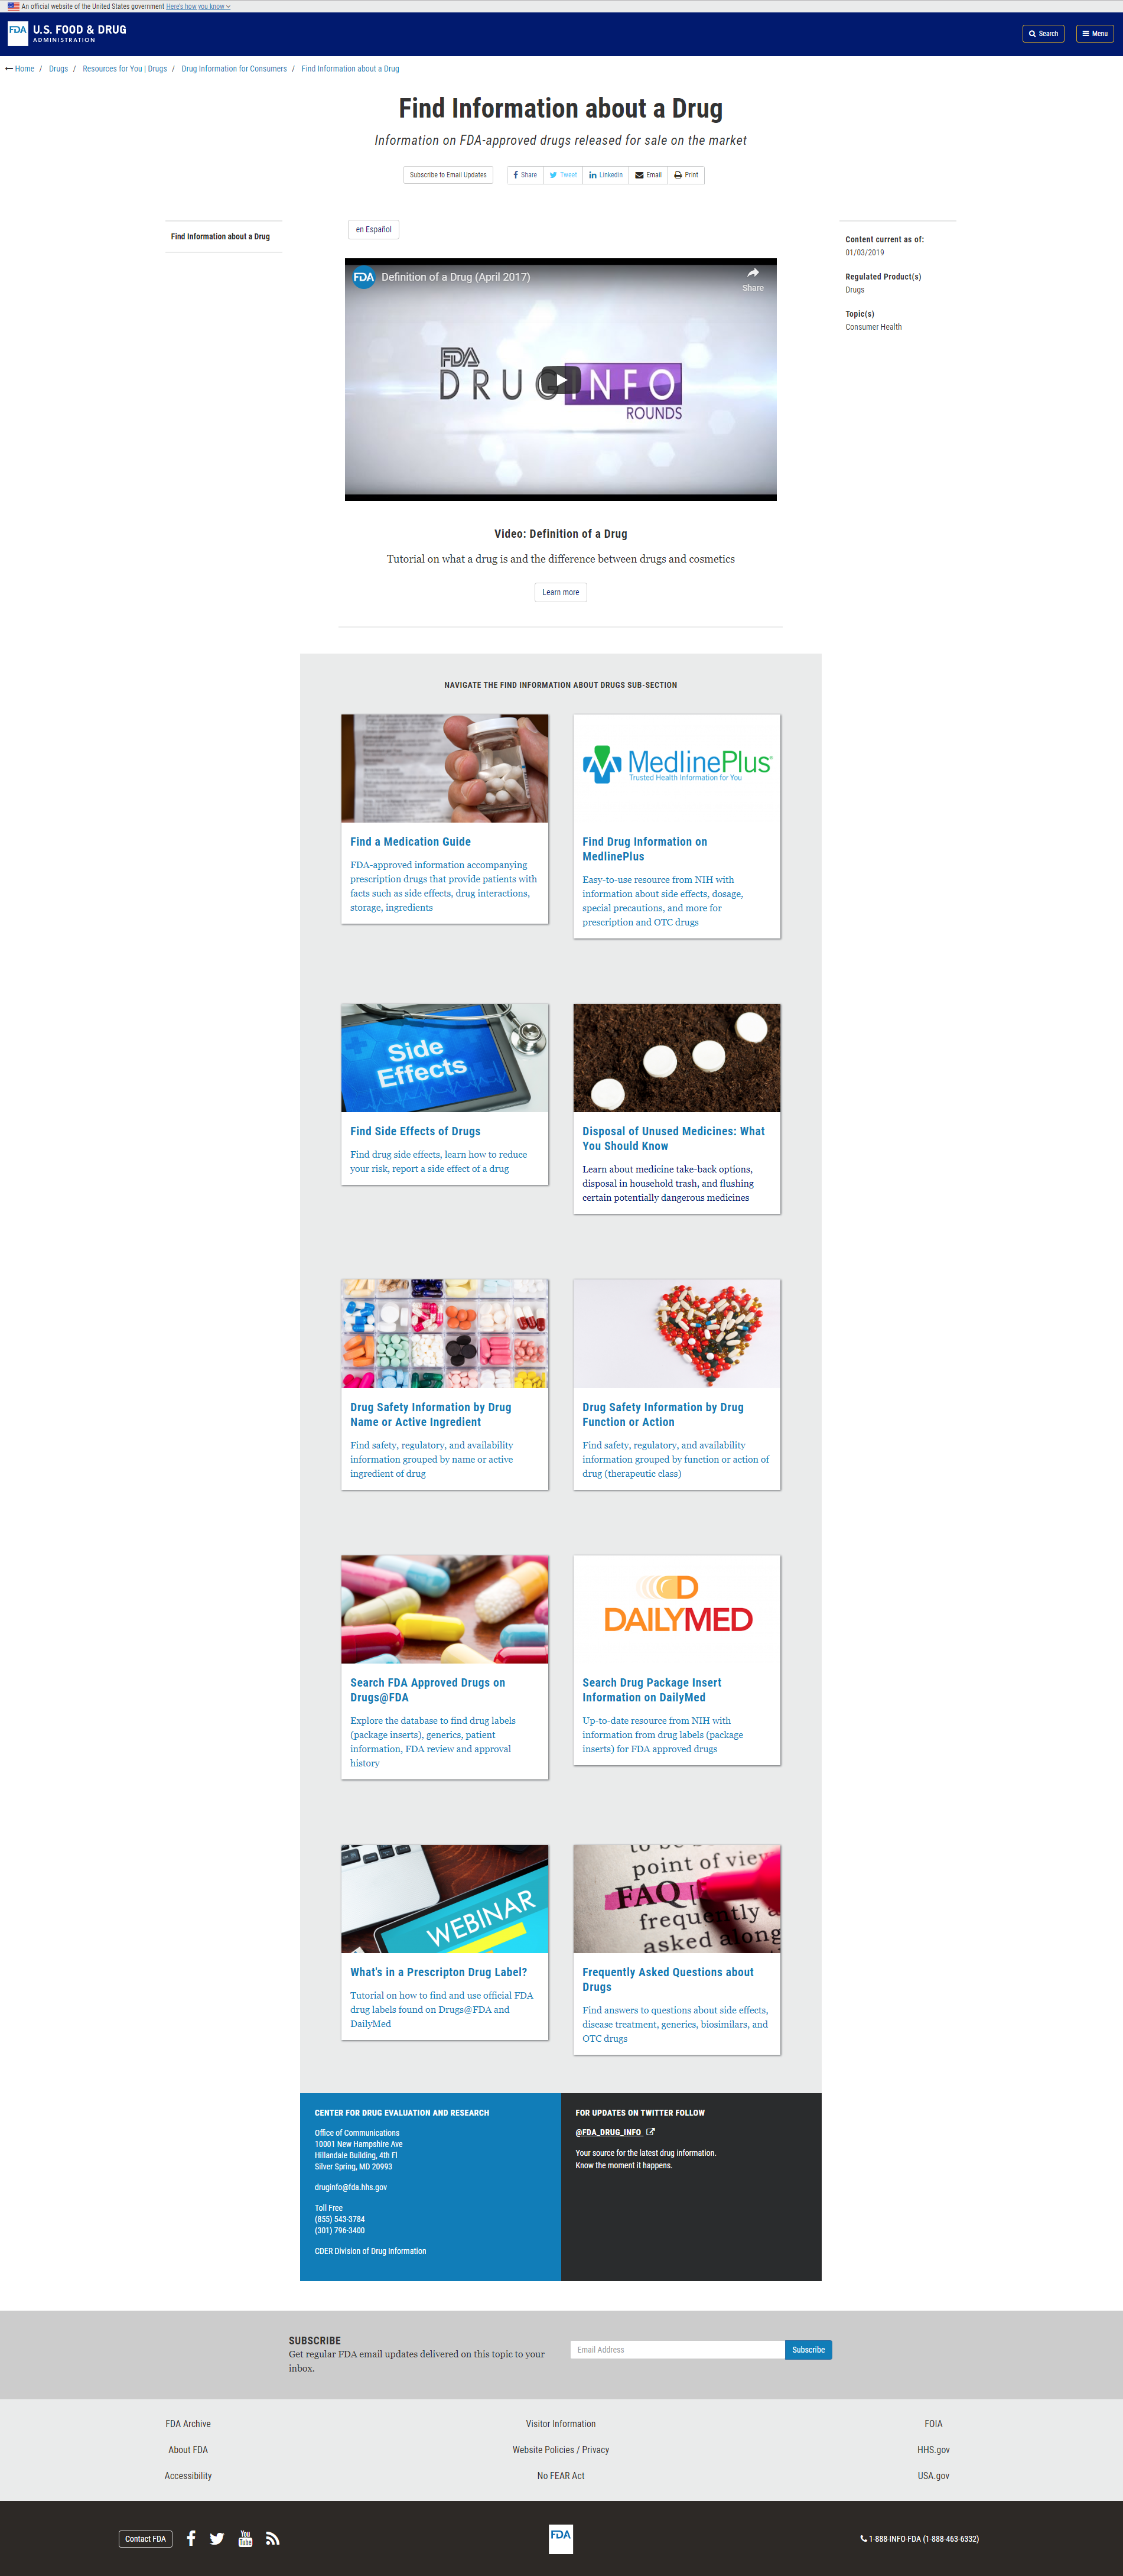 Redesigned Find Information about a Drug landing page: Desktop view (Drupal Version)